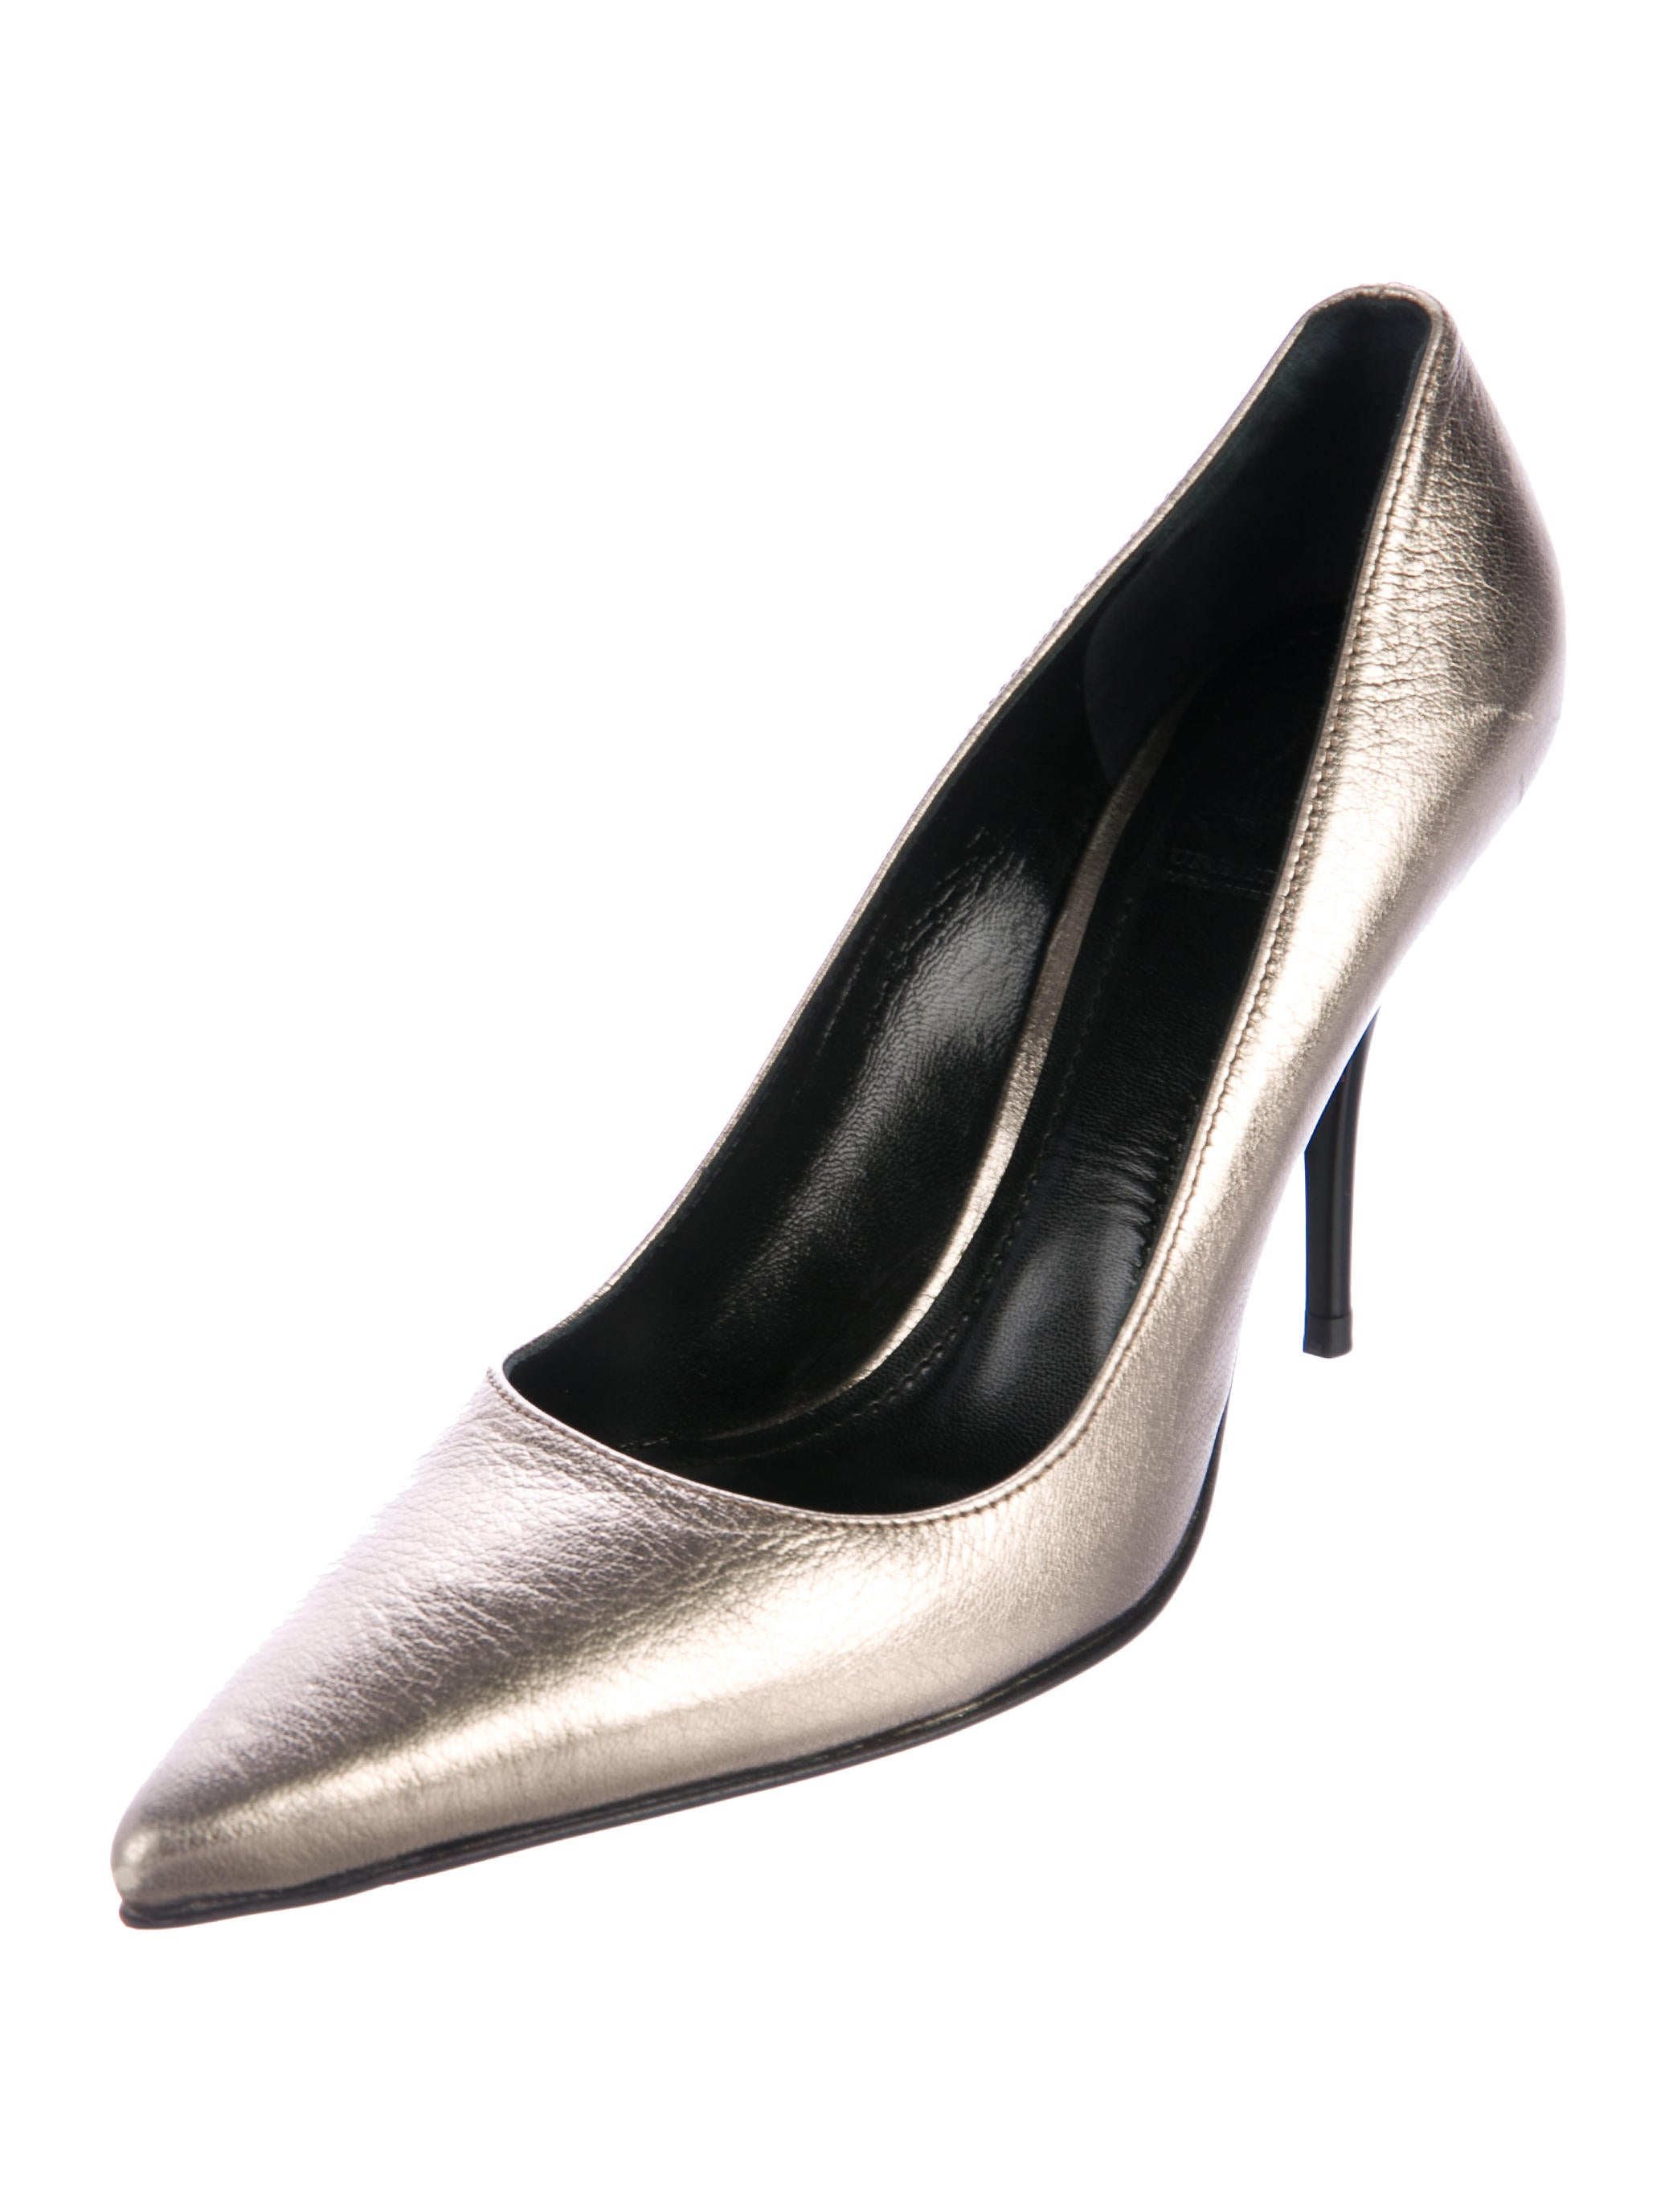 Burberry Metallic Pointed-Toe Pumps find great cheap online DvARzQ